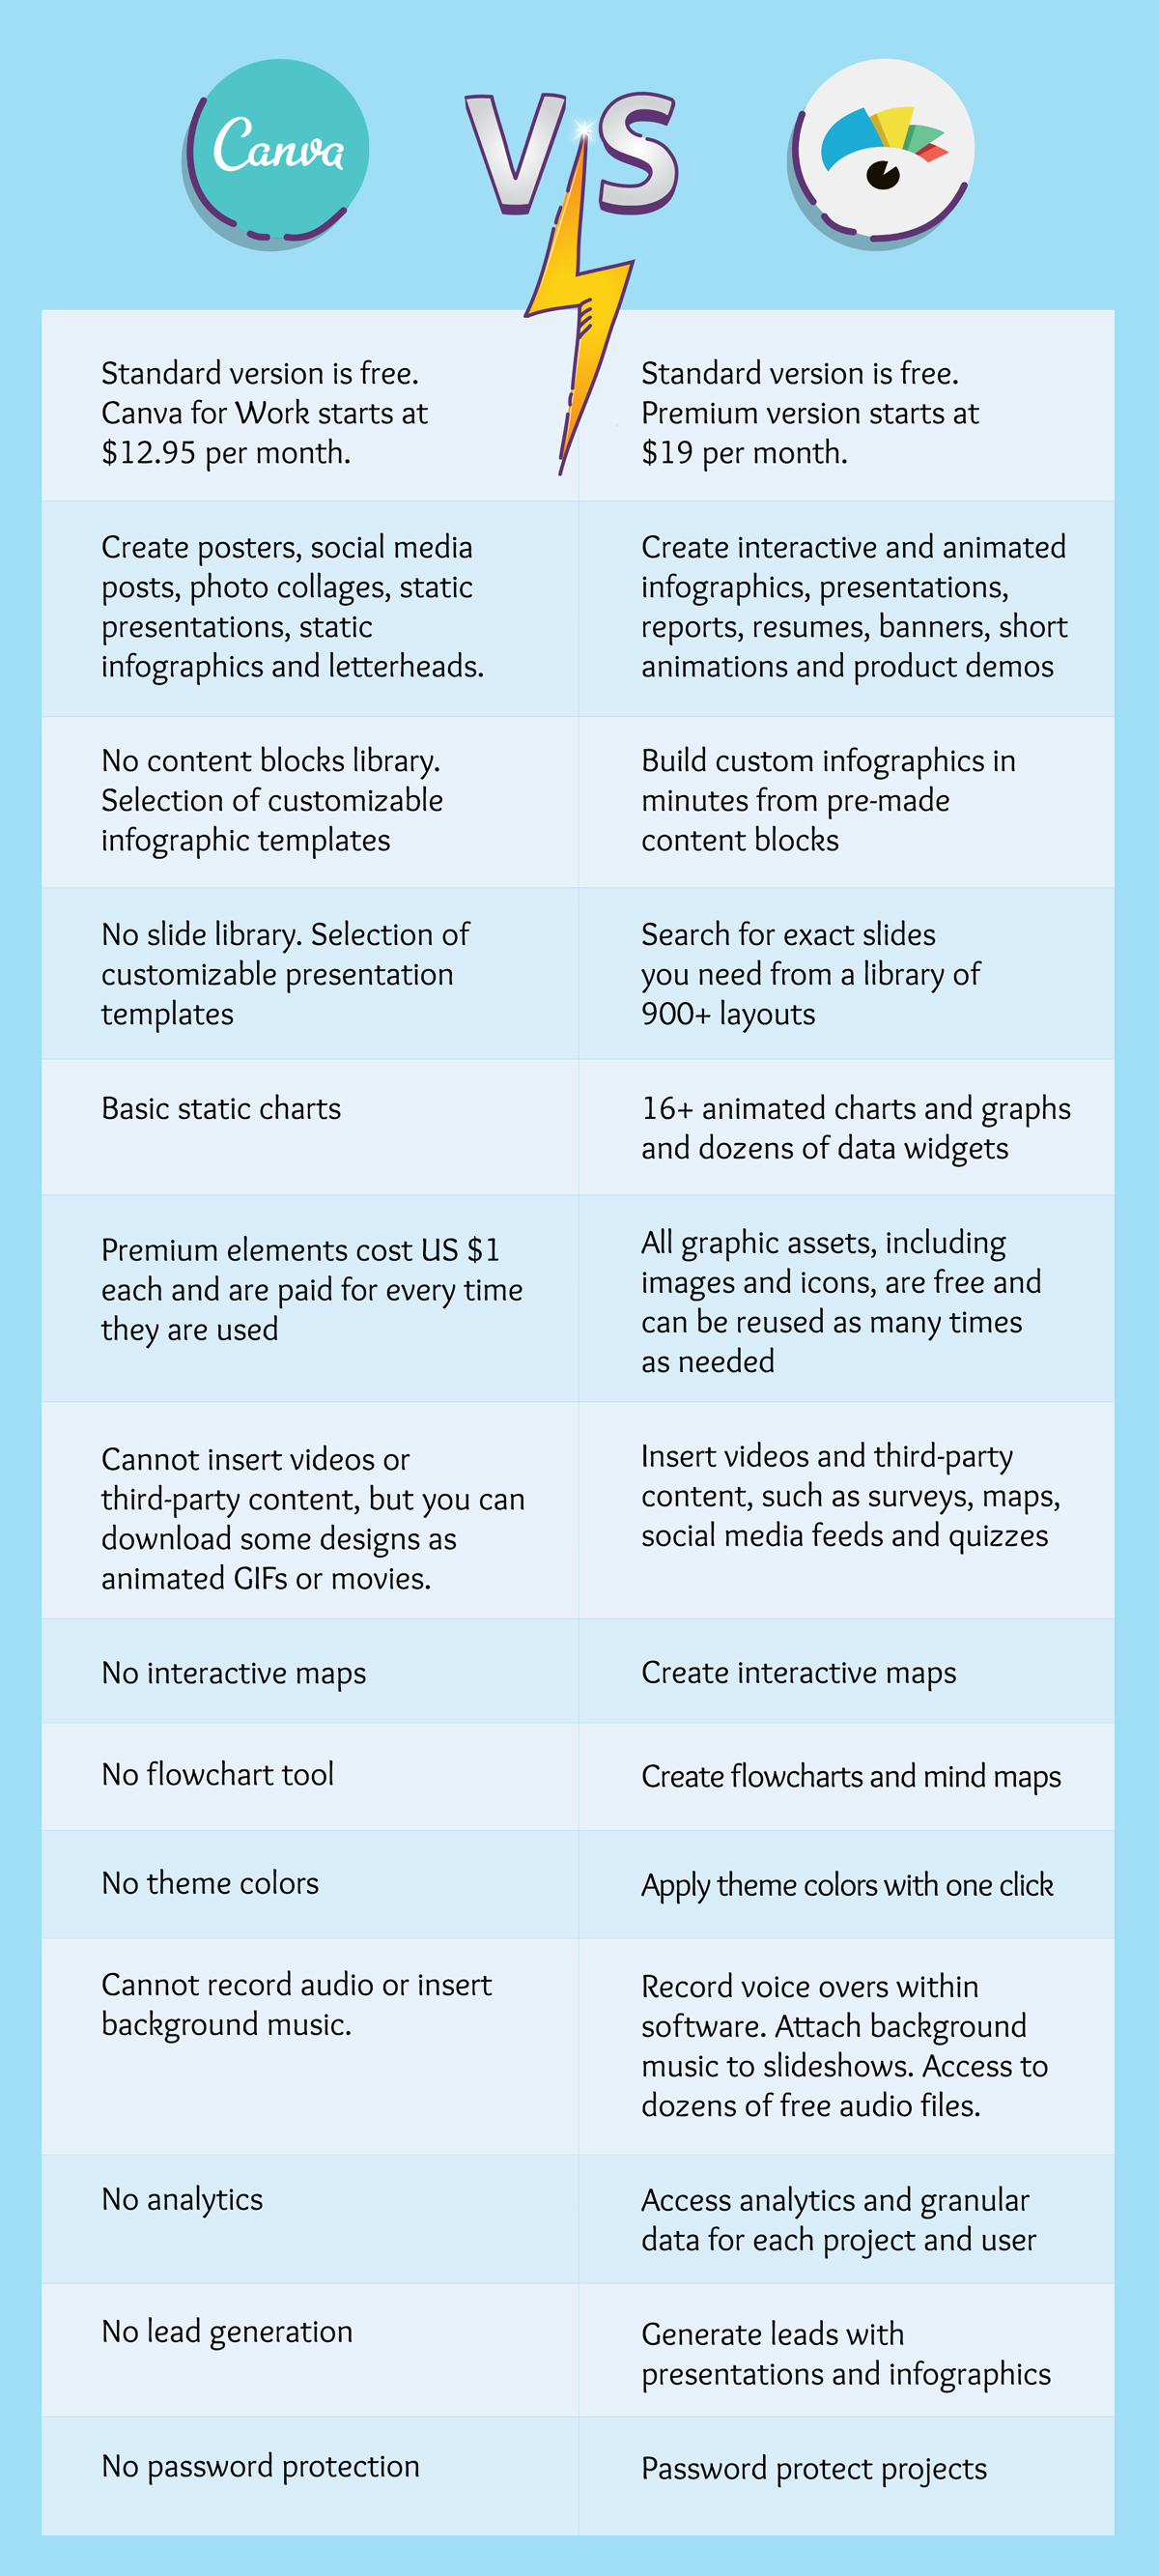 canva alternatives comparison with visme infographic